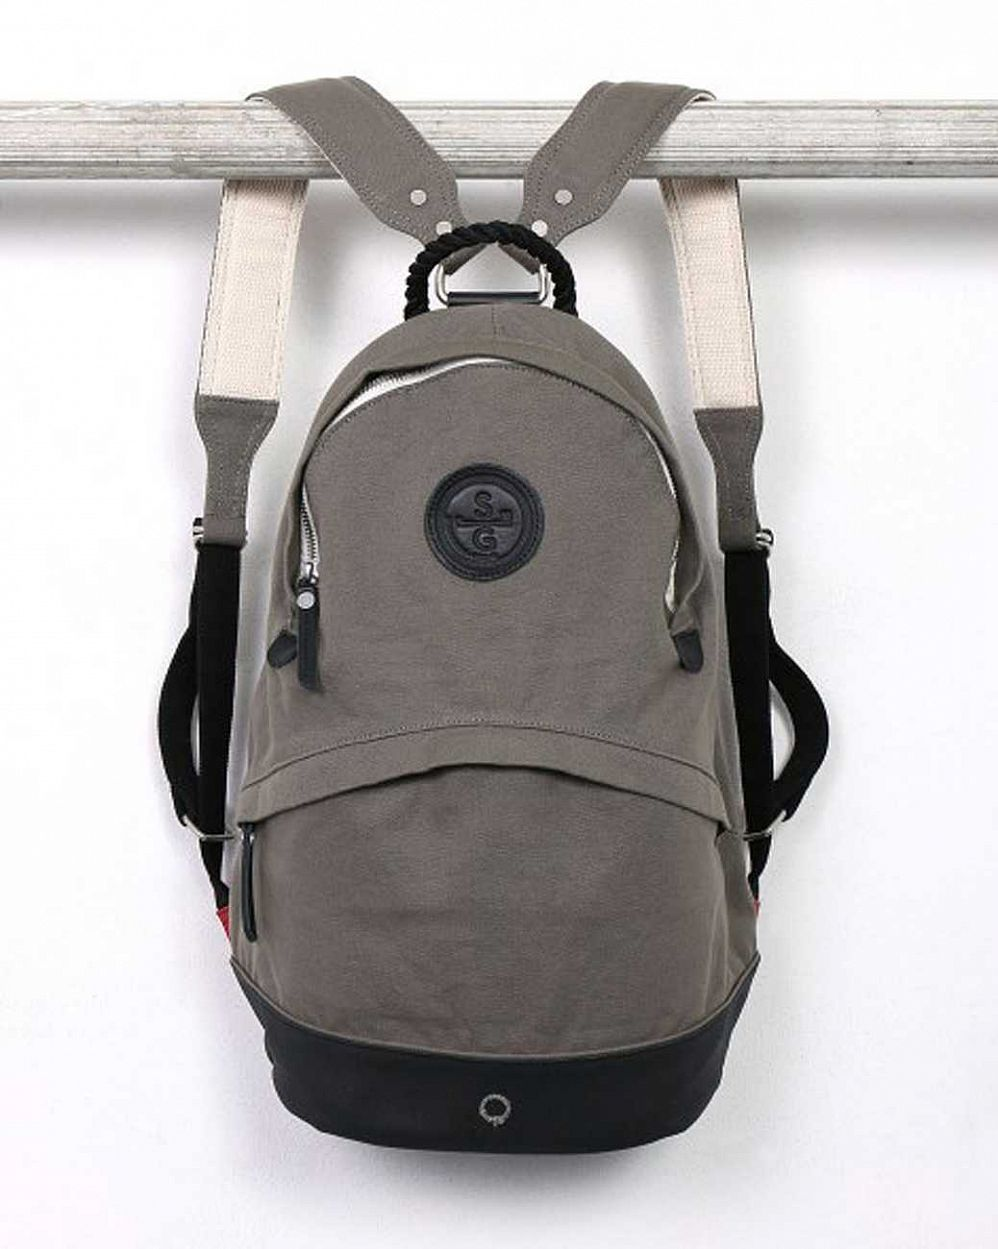 купить Рюкзак Stighlorgan Oisin canvas zip-top backpack  taupe grey & black в Москве